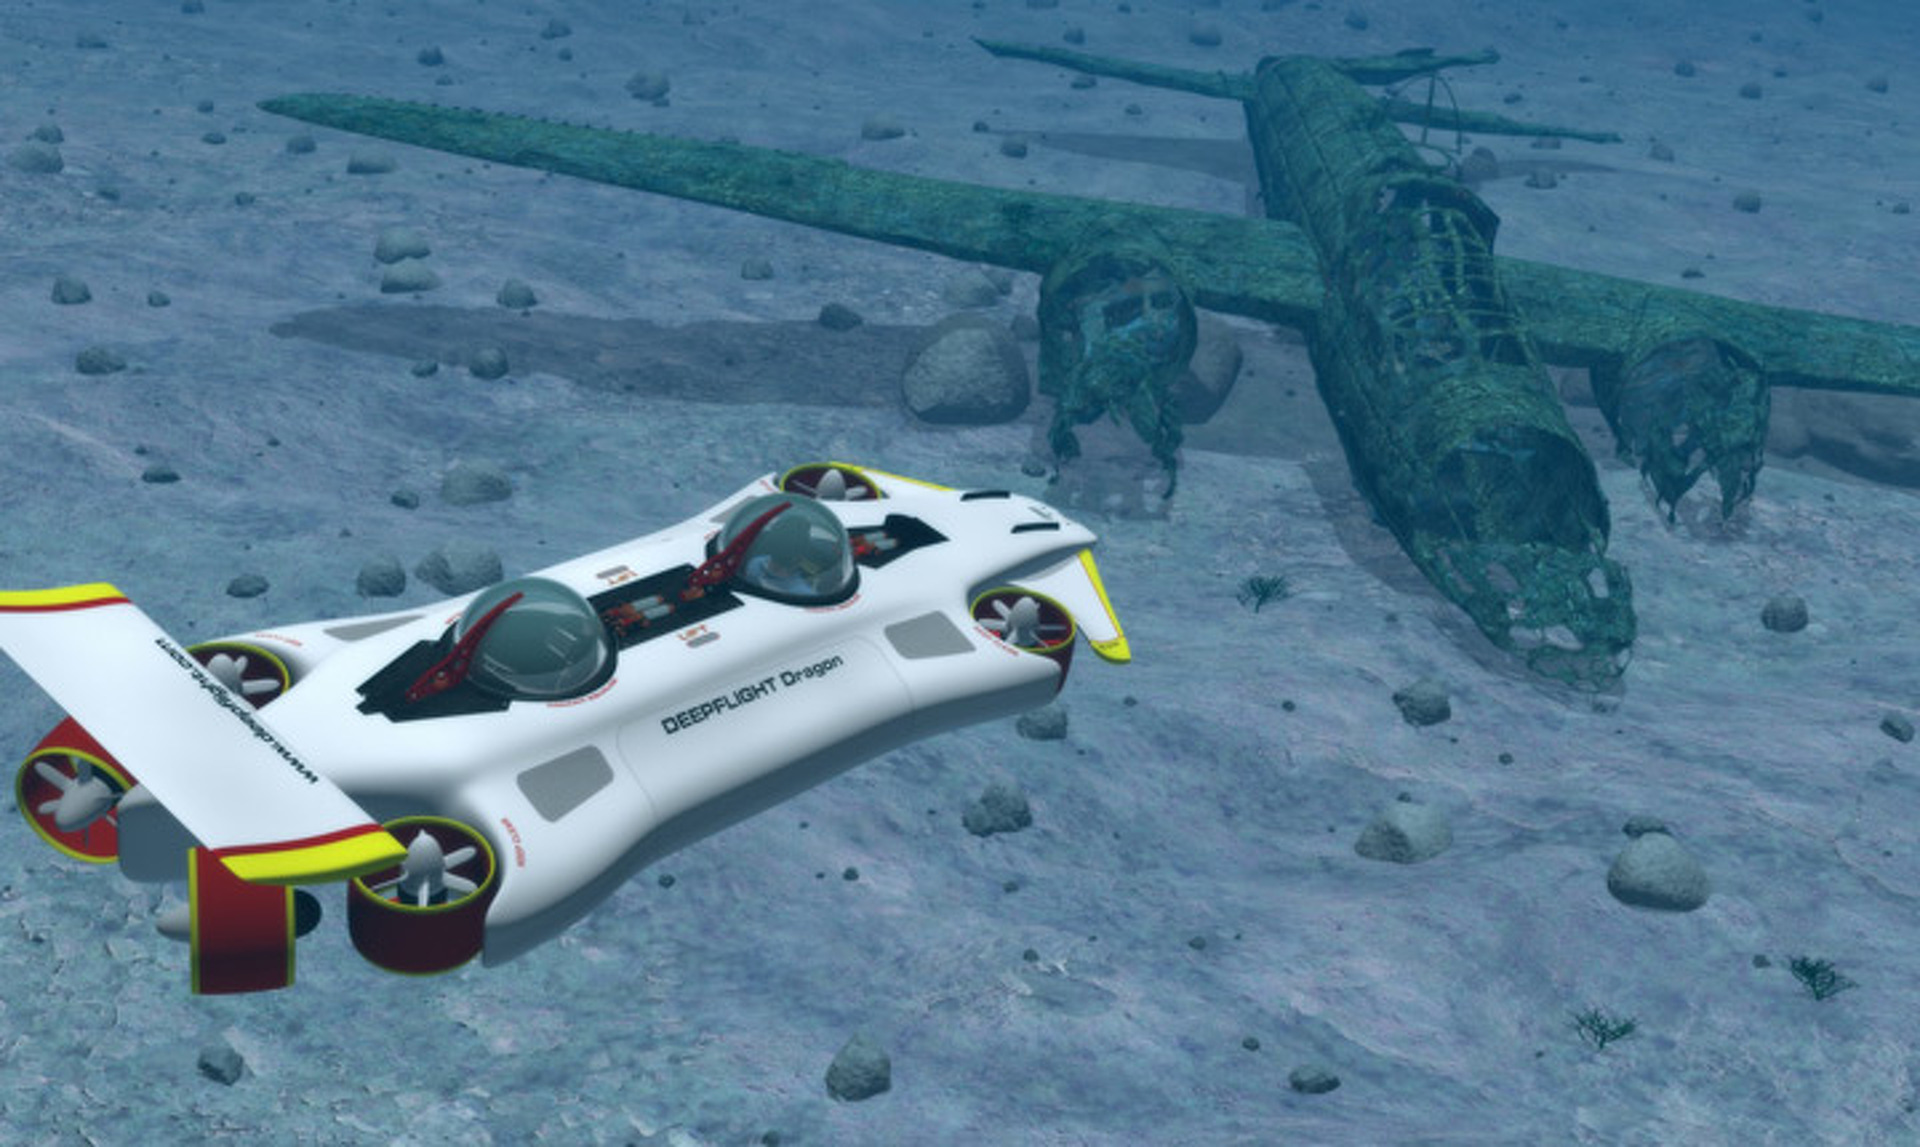 DeepFlight Dragon: A $1.5 Million Underwater Explorer